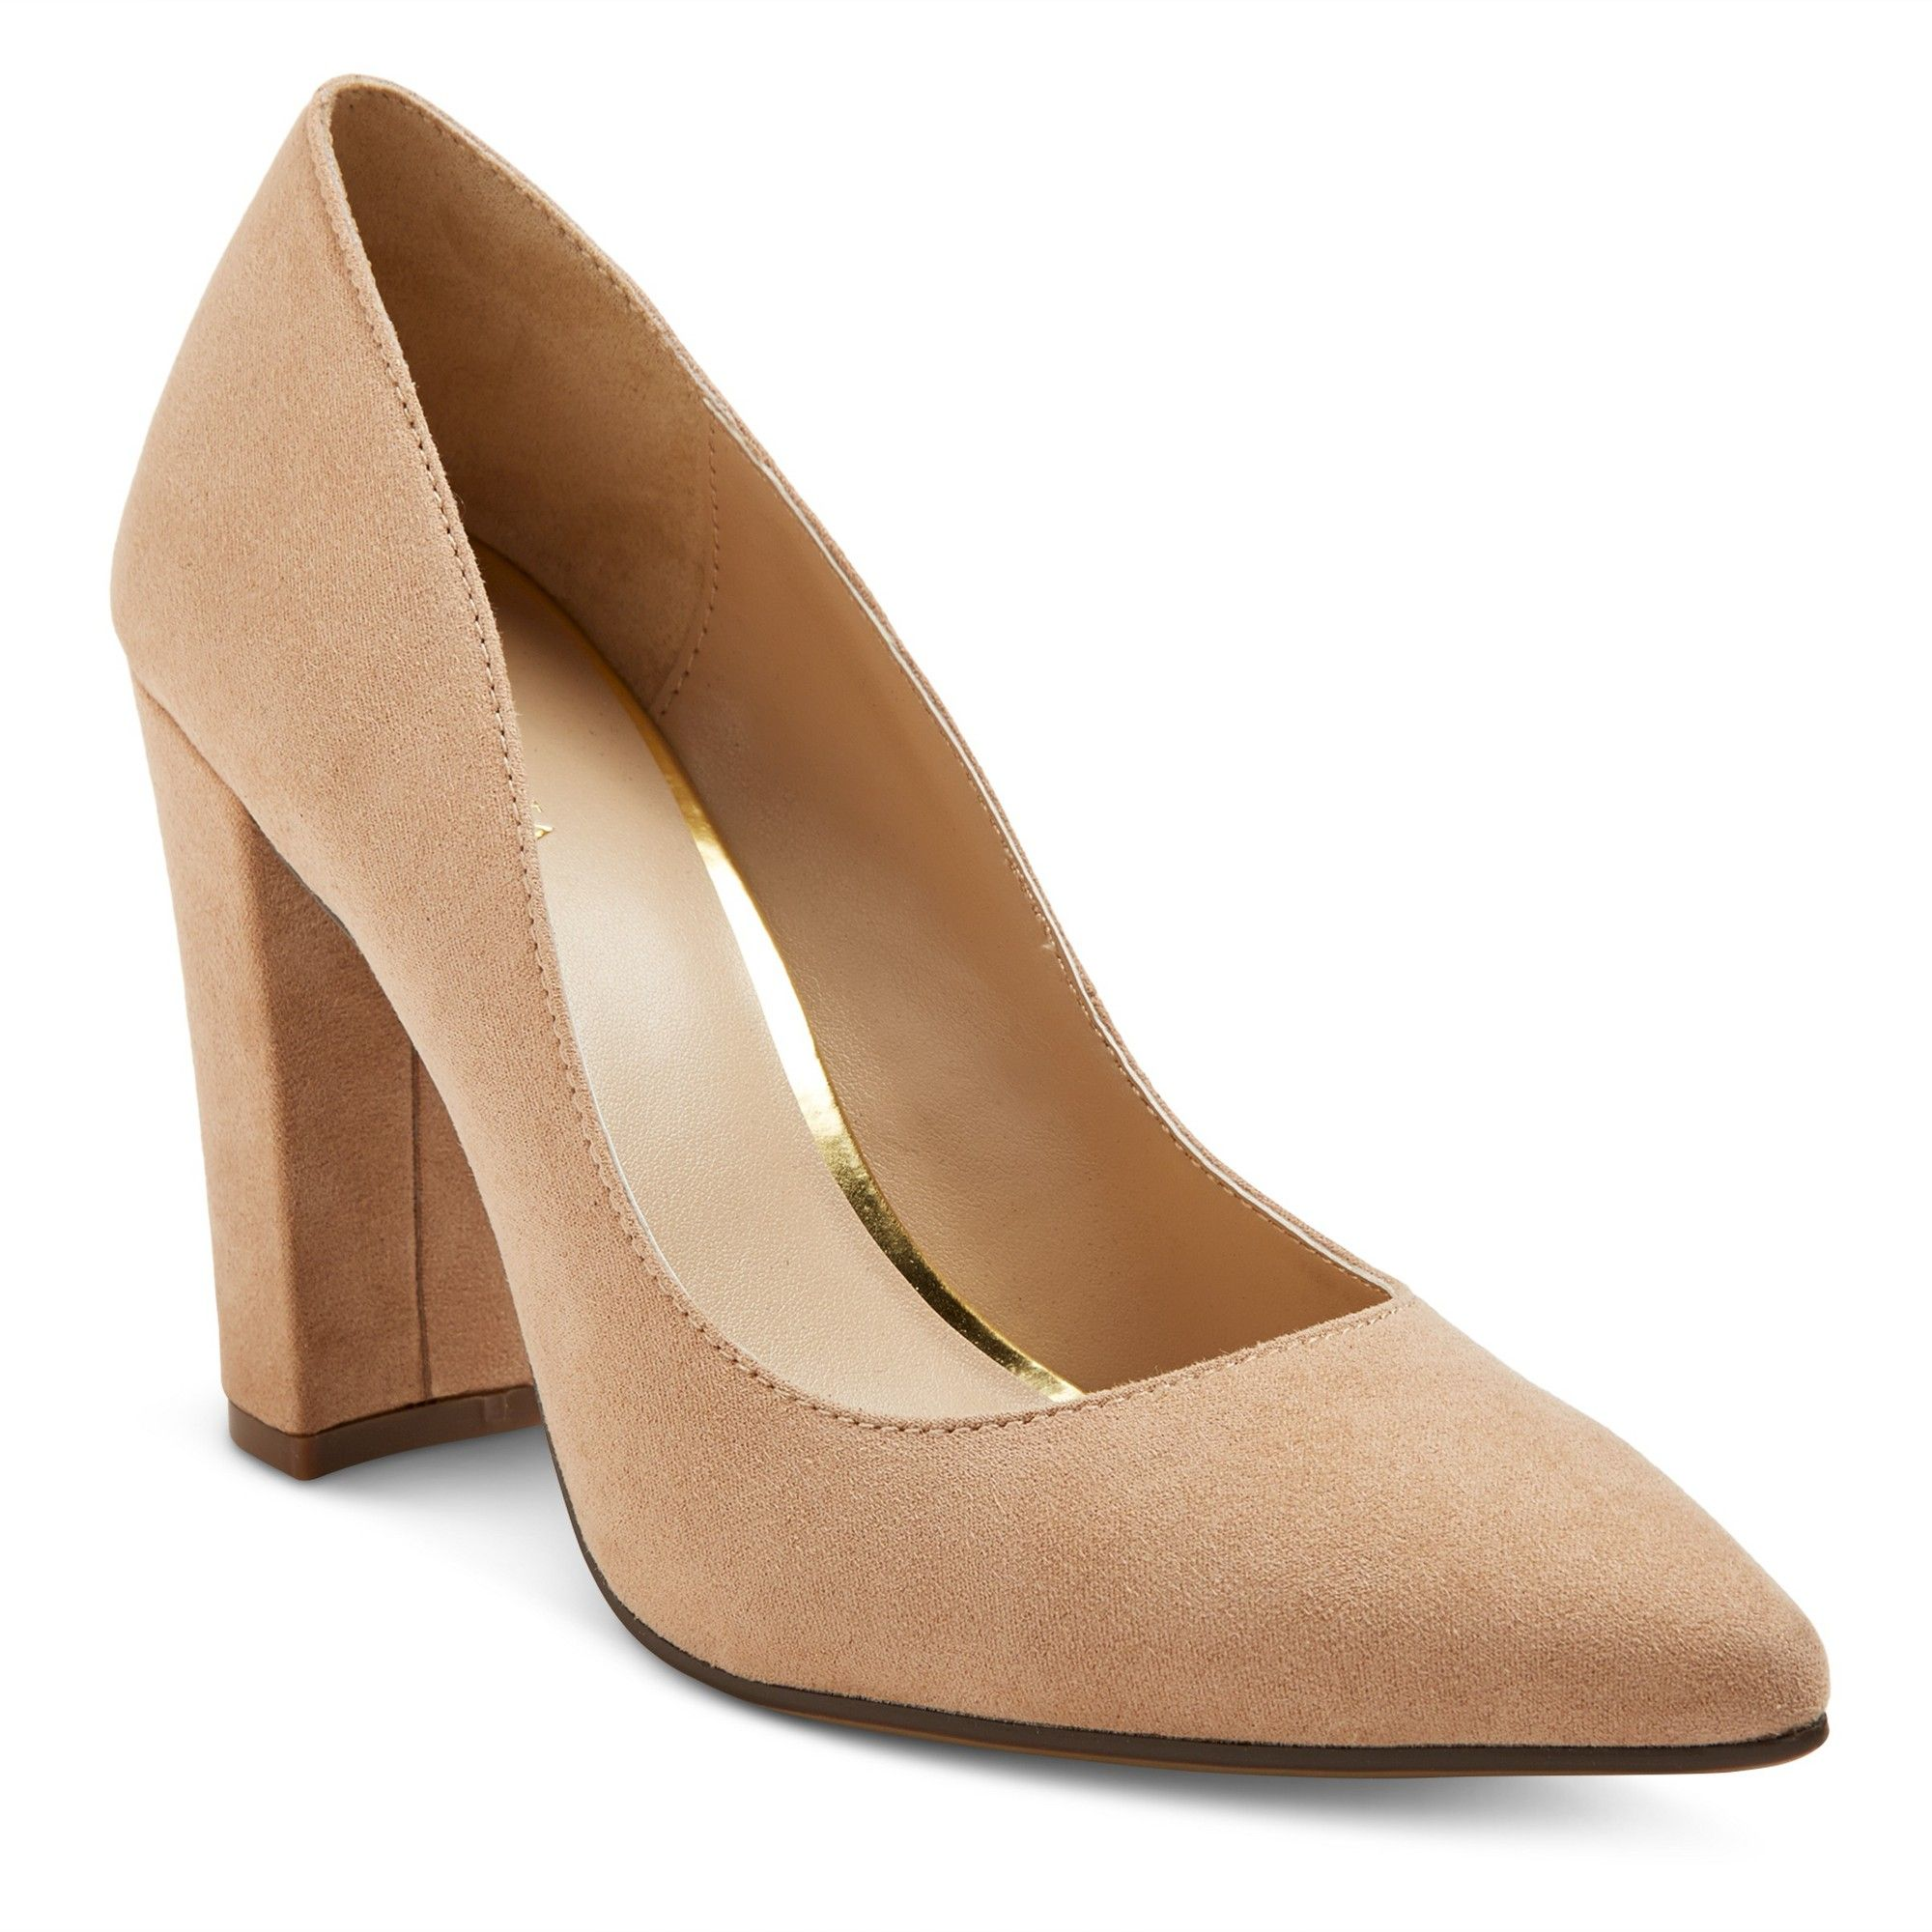 8e4caf34984 Women s Brie Block Heel Pumps - Merona Tan 5.5